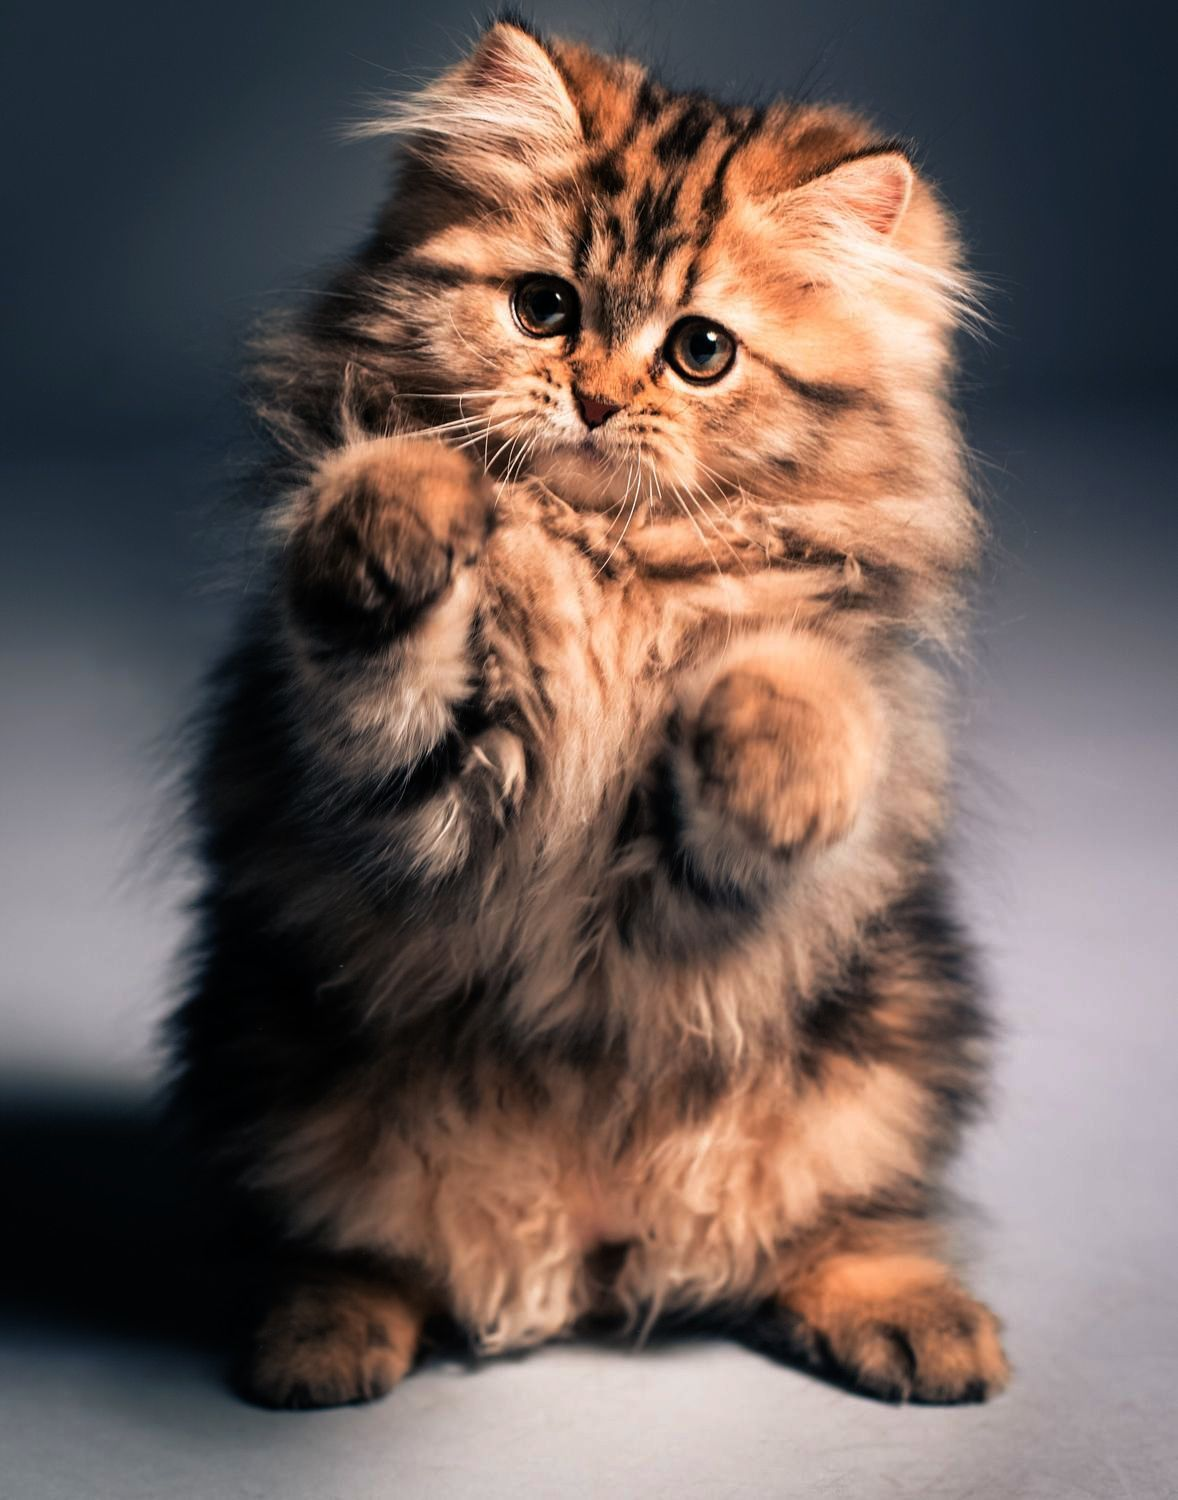 Neat Cats And Kittens Magazine Follow Cats Cute Cats Cute